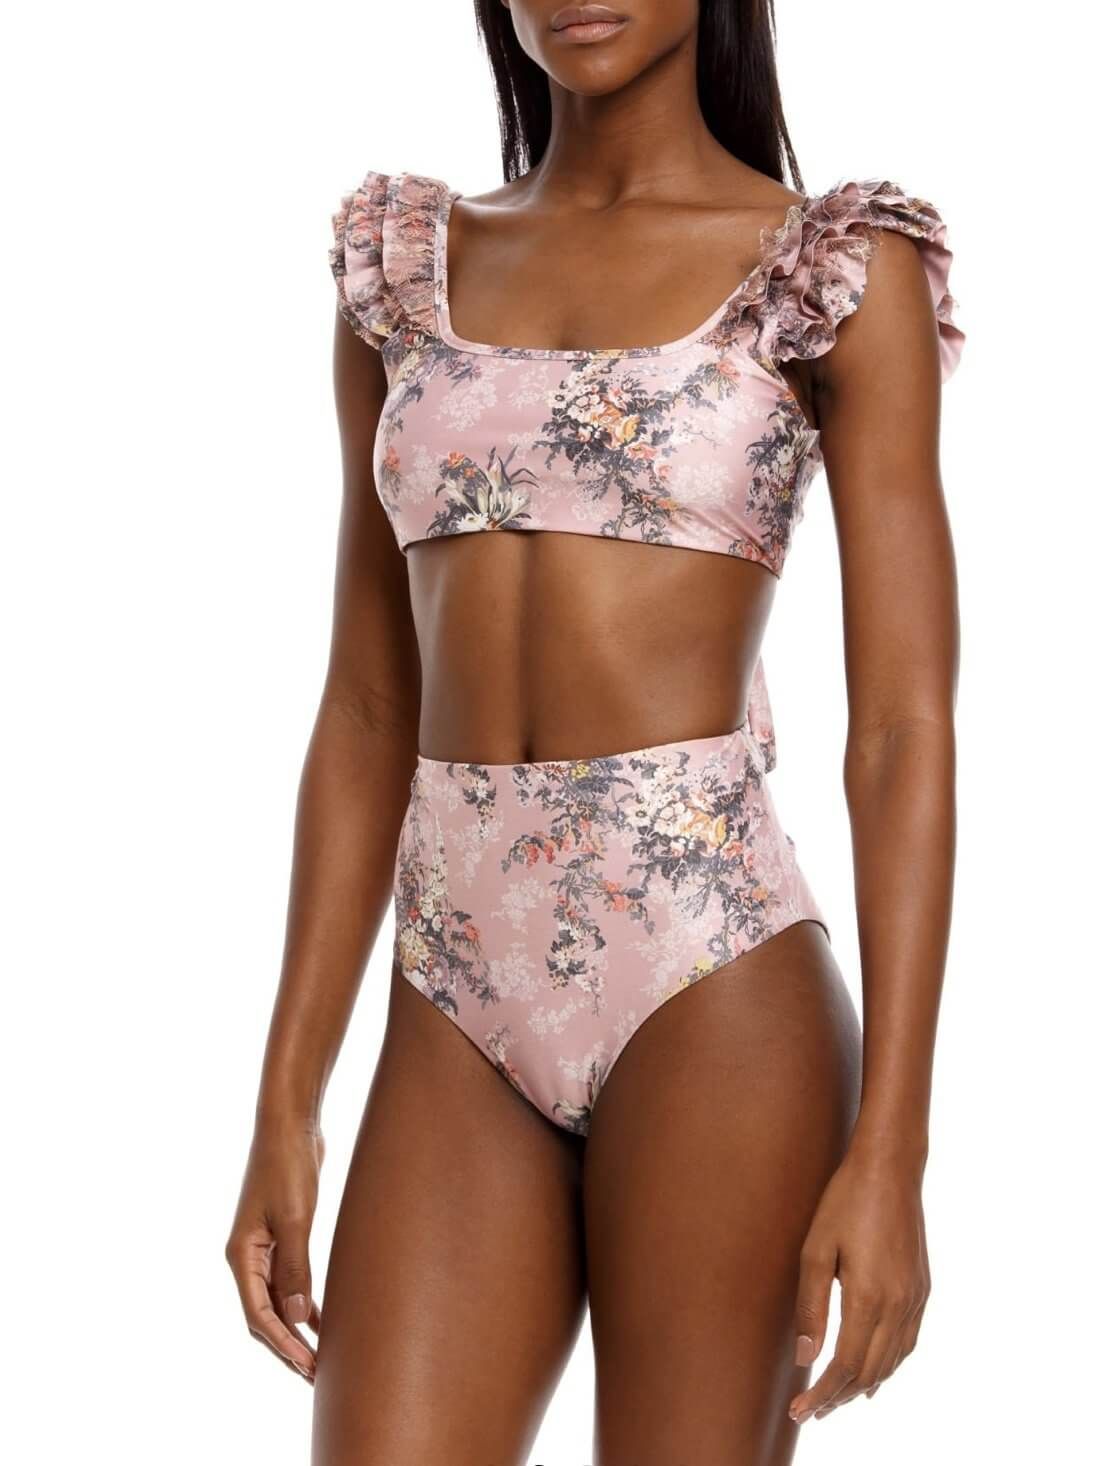 Two-piece swimsuit from Agua Bendita Papier Arielle Top / Papier Alicia Bottom. Made of floral print fabric with lace on the shoulders and high cut bikini.